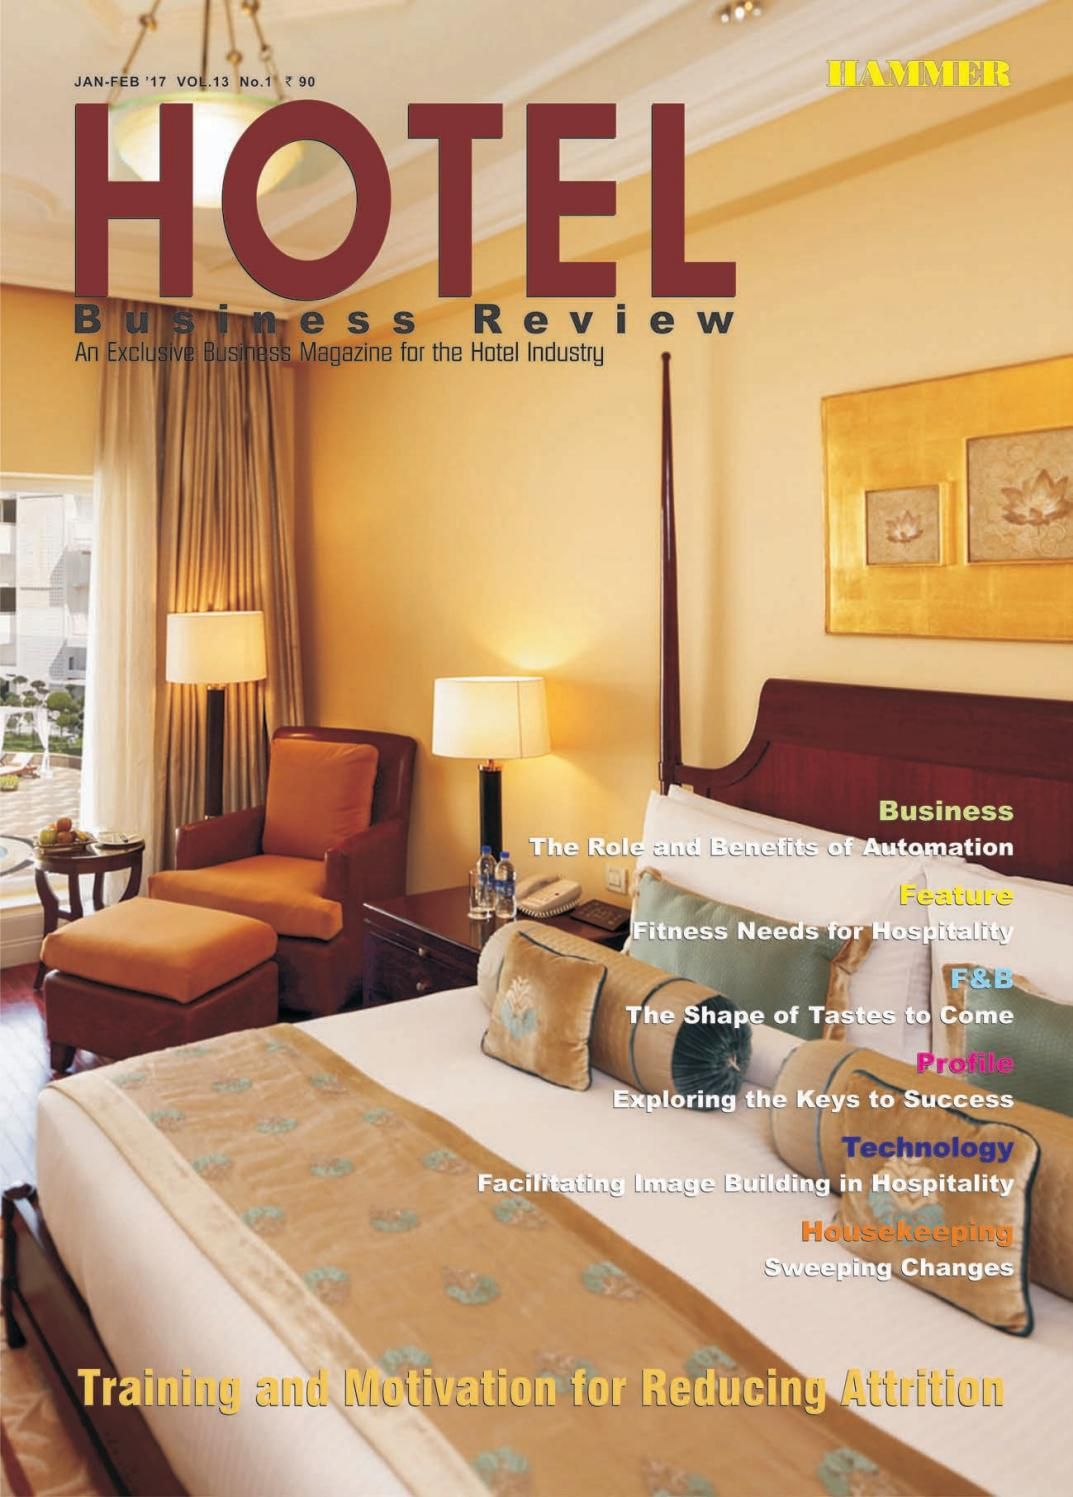 hotel business review (january-february 2017)hammer publishers